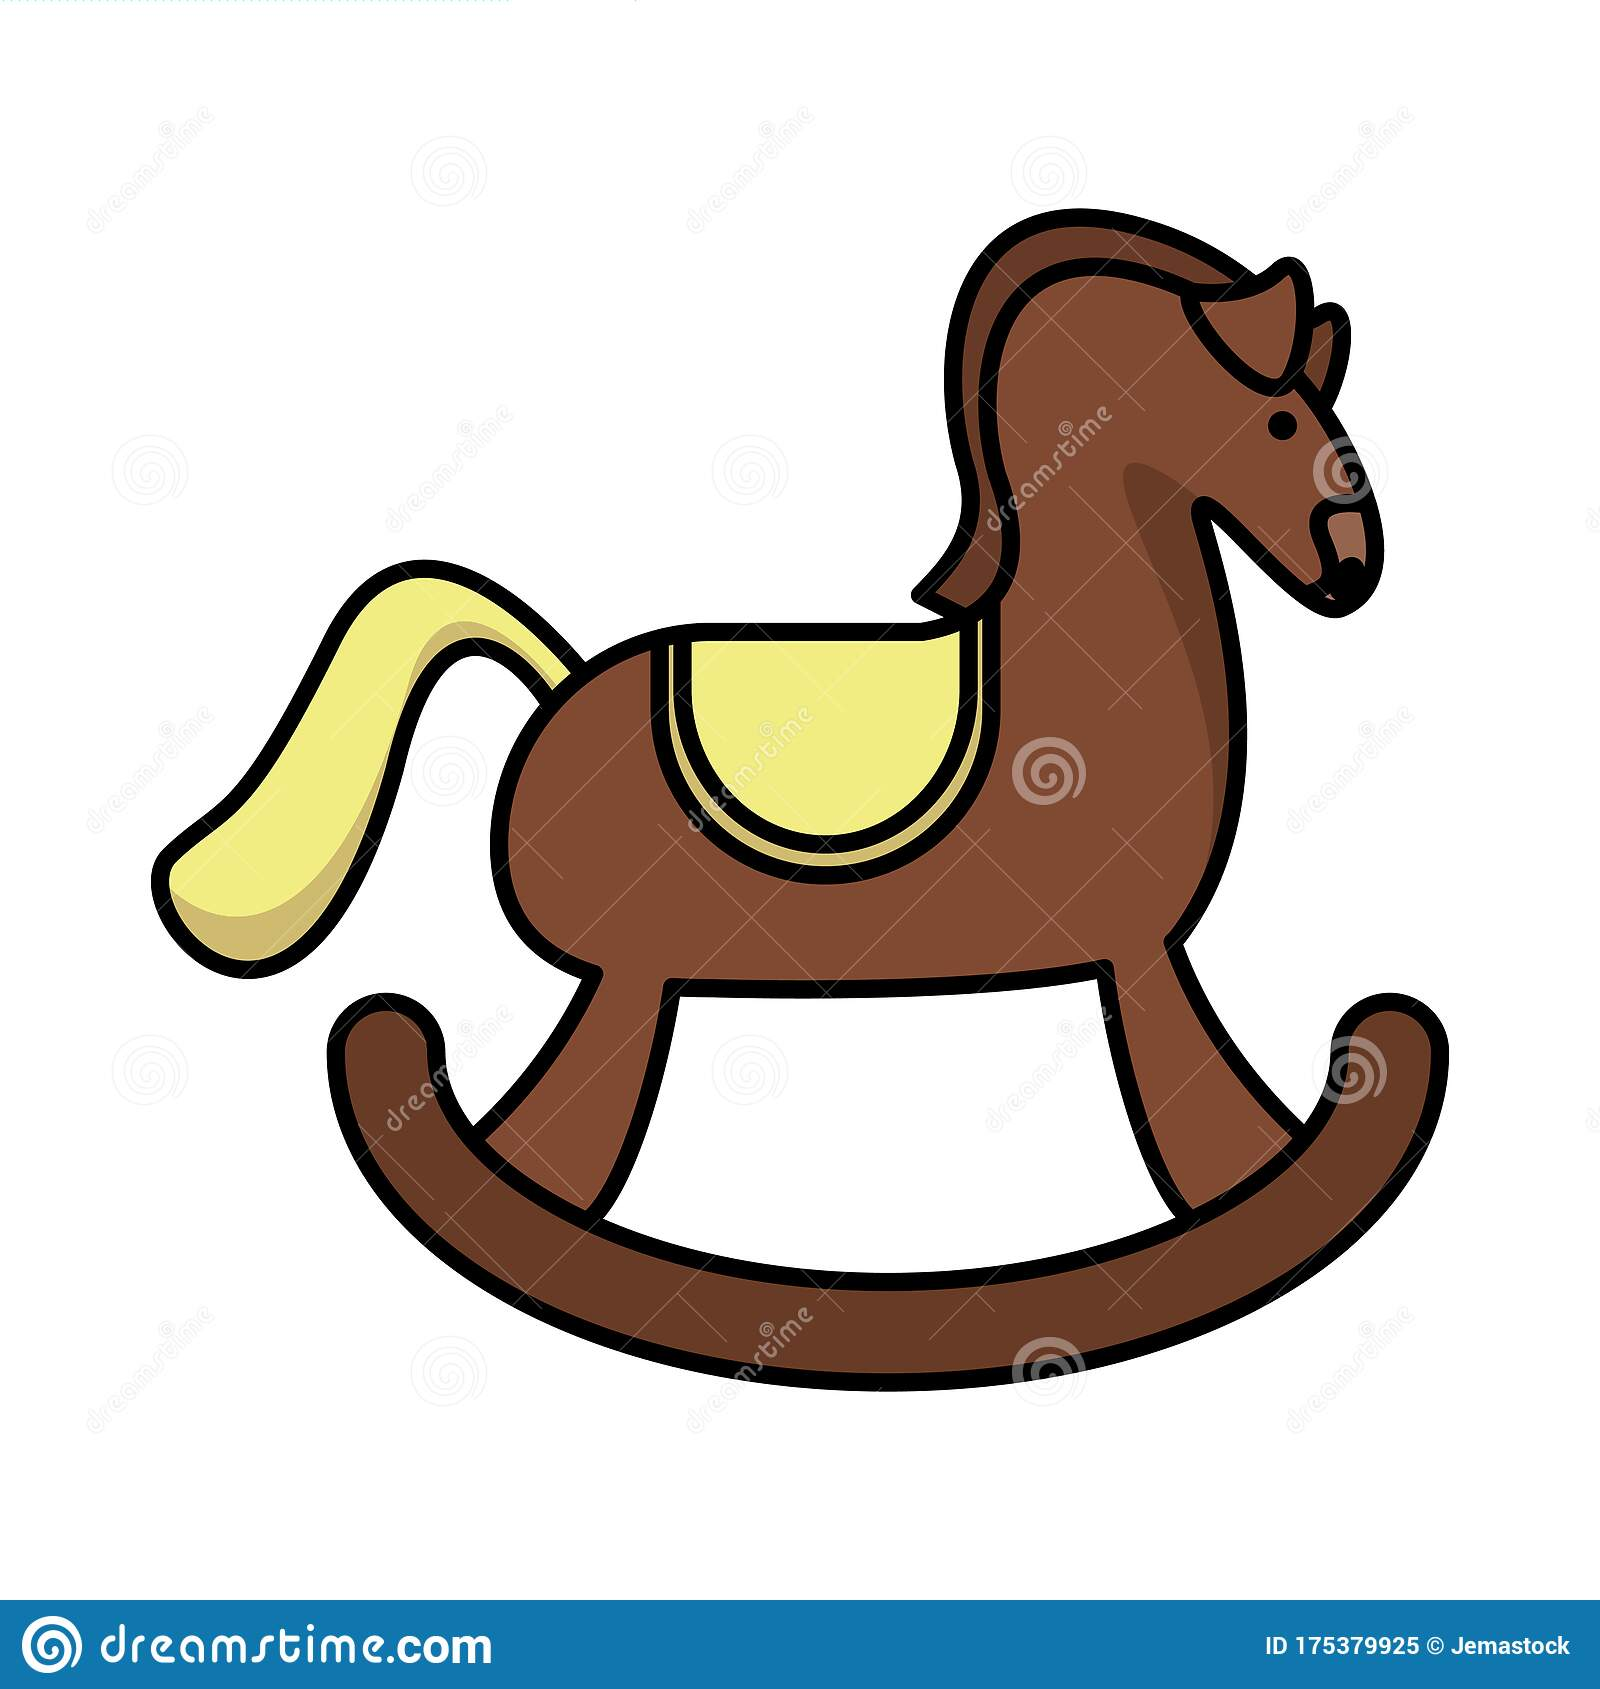 Cute Horse Wooden Child Toy Flat Style Icon Stock Vector Illustration Of Clipart Isolated 175379925